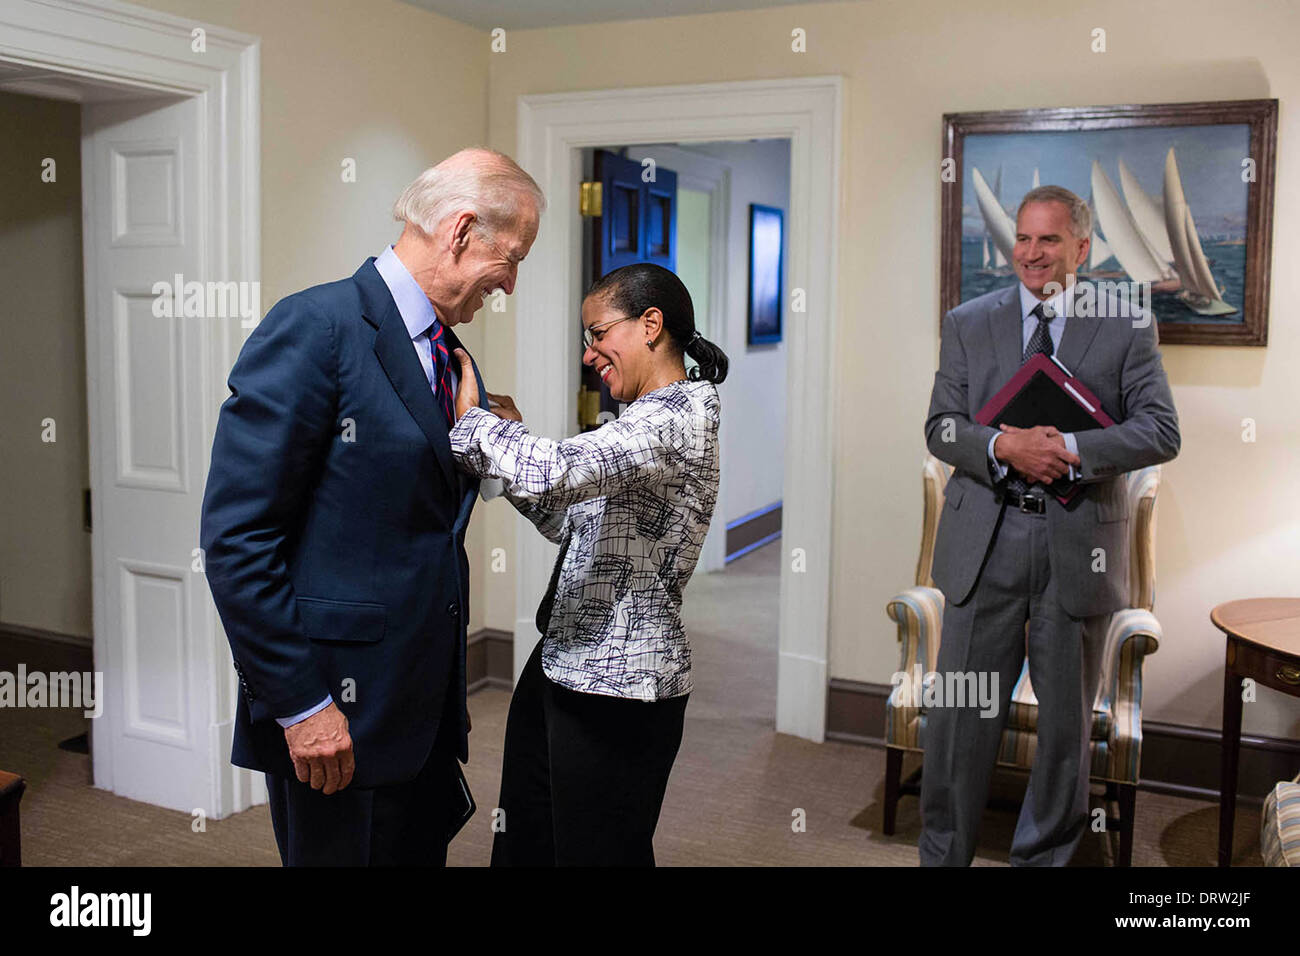 National Security Advisor Susan Rice helps Vice President Joe Biden with a spot on his suit jacket, in a hall outside the Oval Office August 2, 2013 in Washington, DC. Robert Cardillo, Deputy Director of National Intelligence for Intelligence Integration, watches at right. - Stock Image